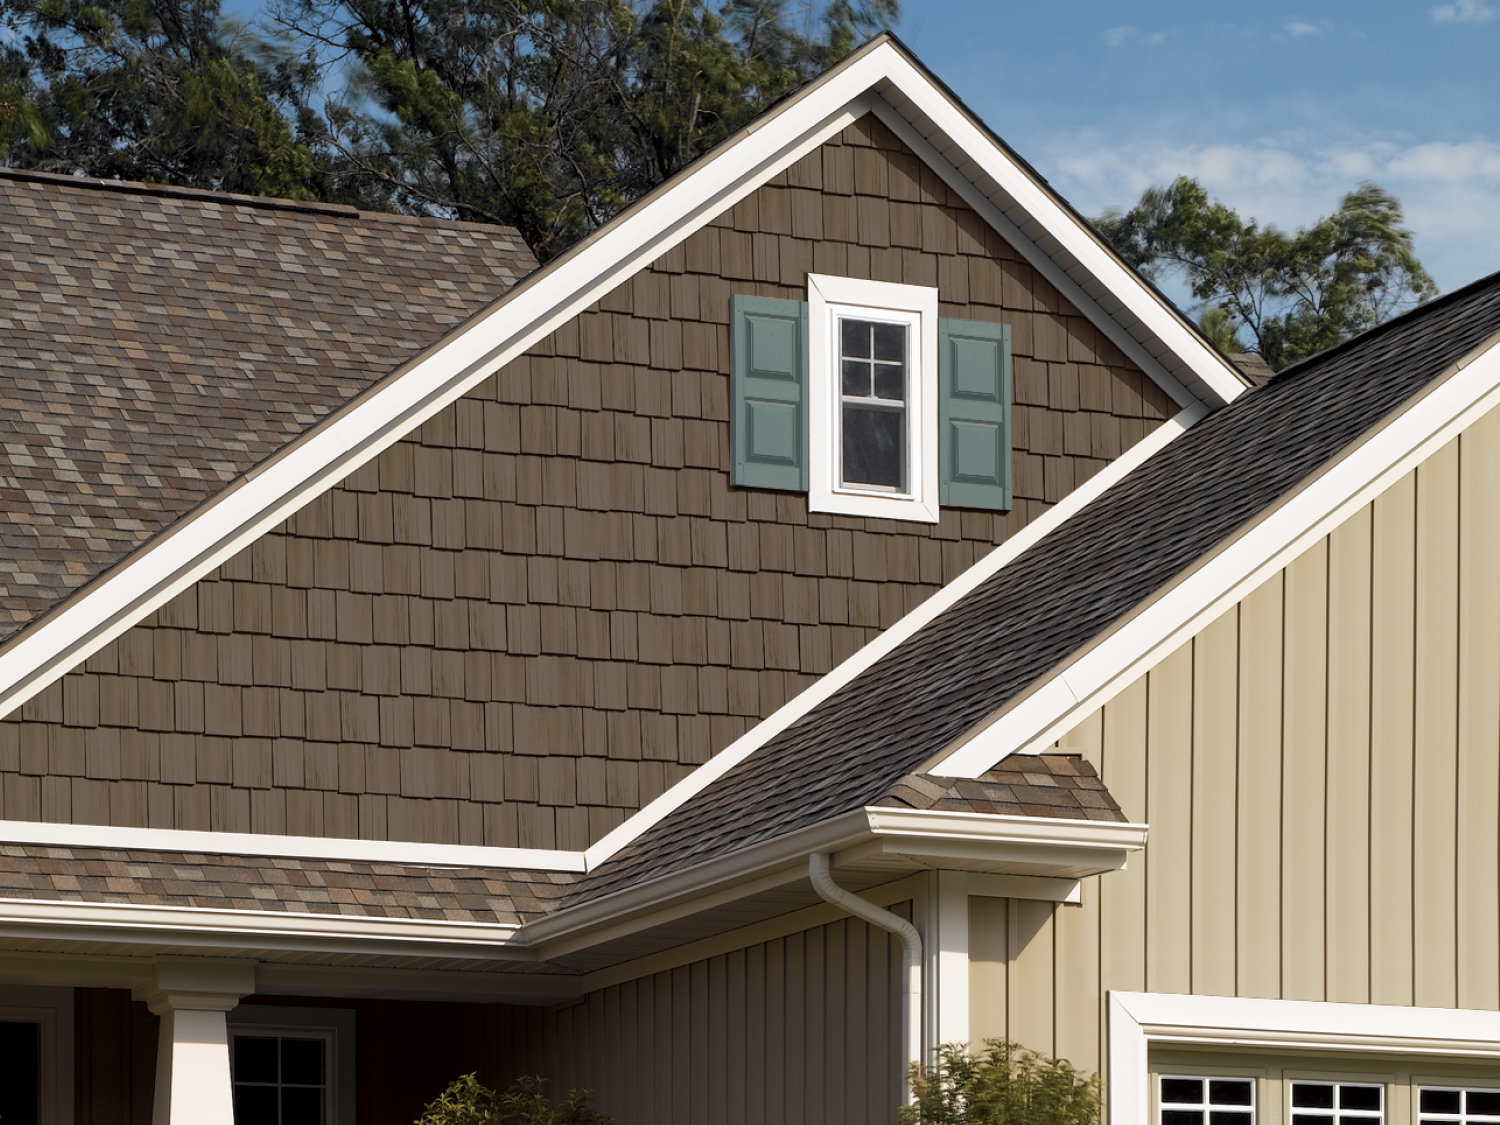 CertainTeed Shake and Shingle Siding